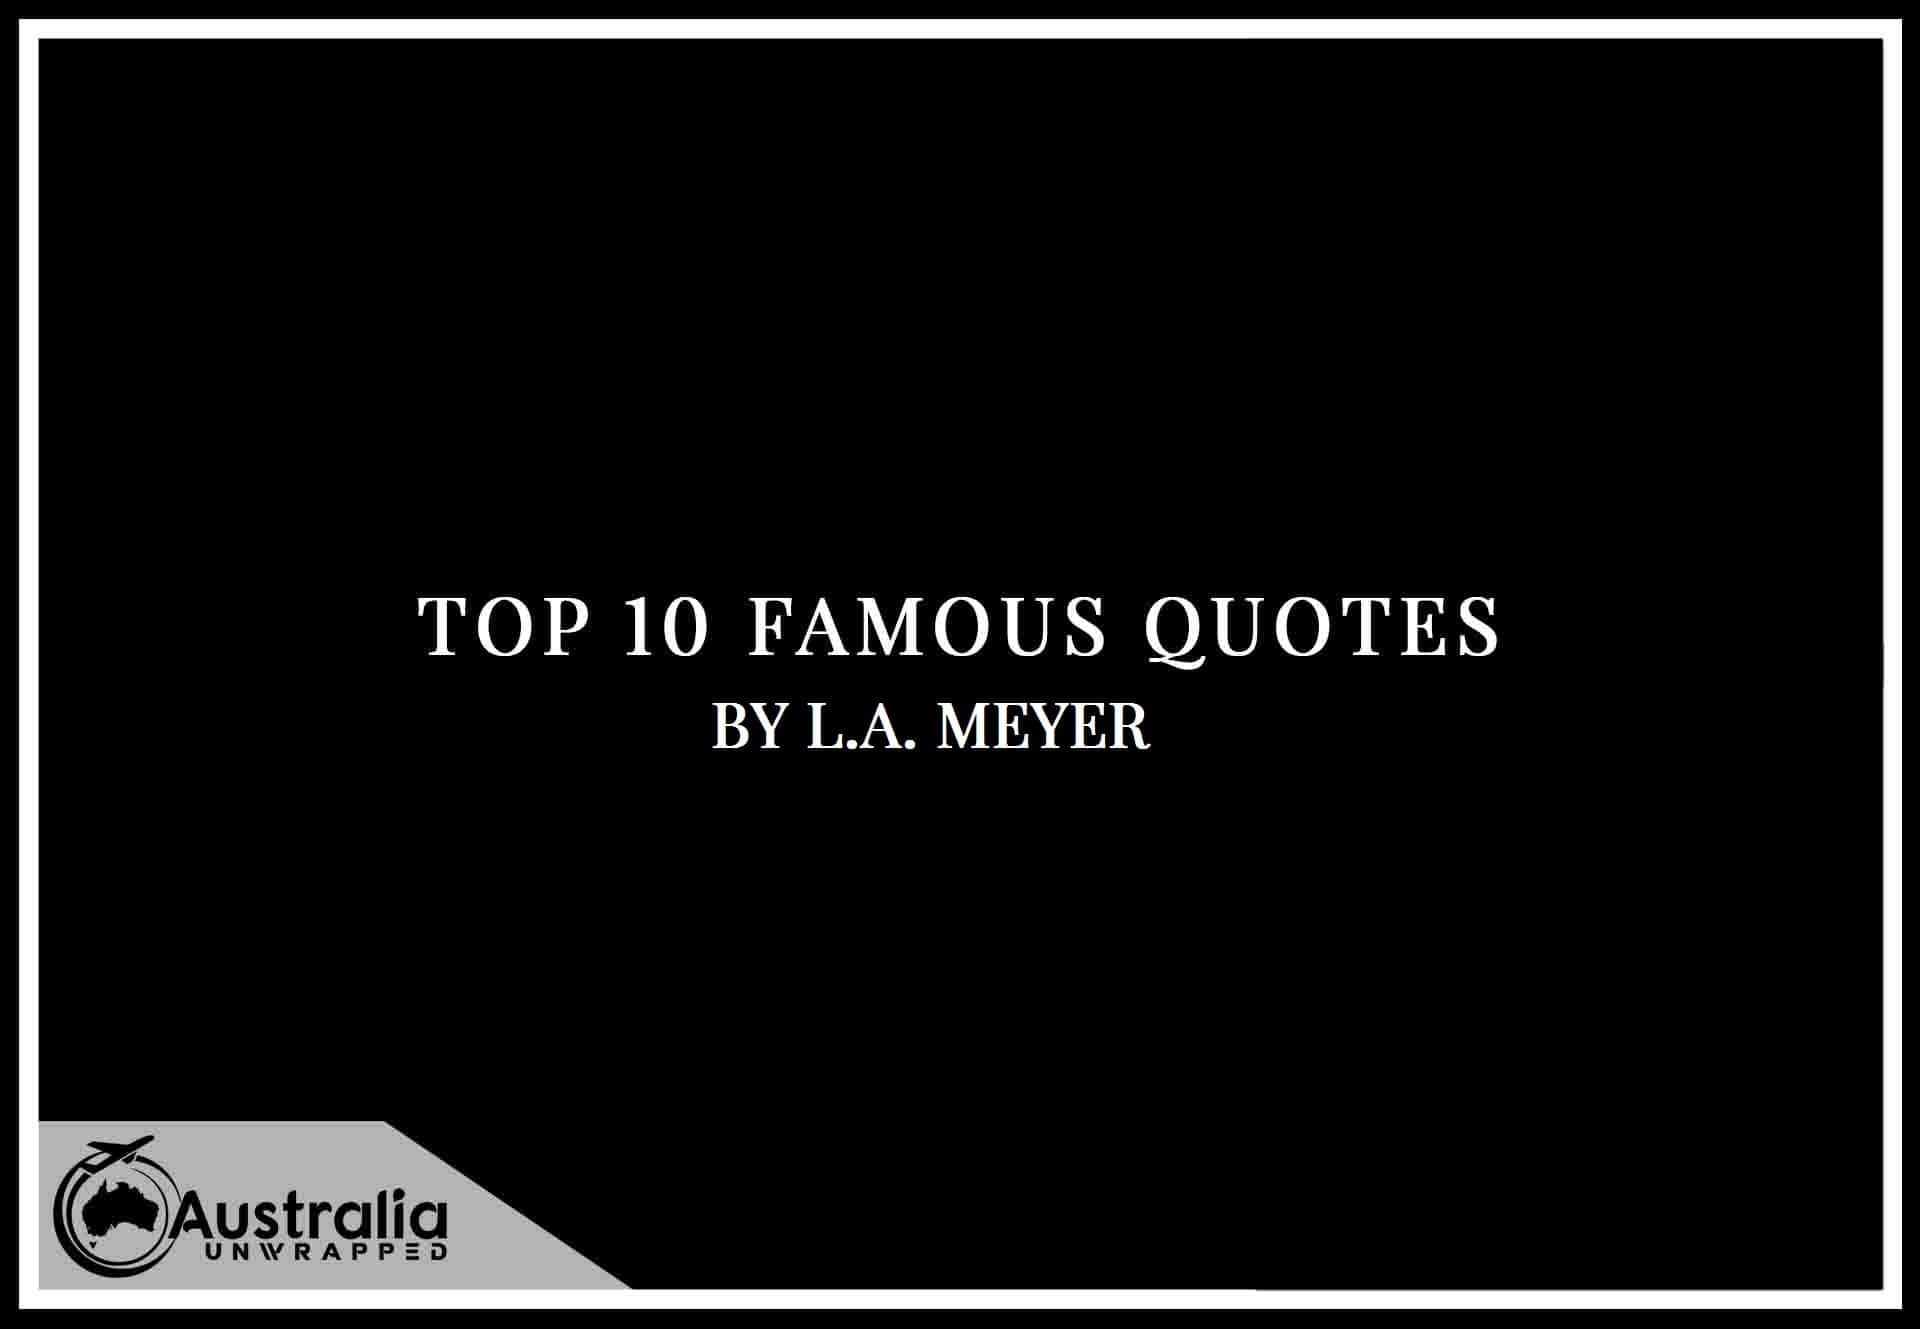 L.A. Meyer's Top 10 Popular and Famous Quotes